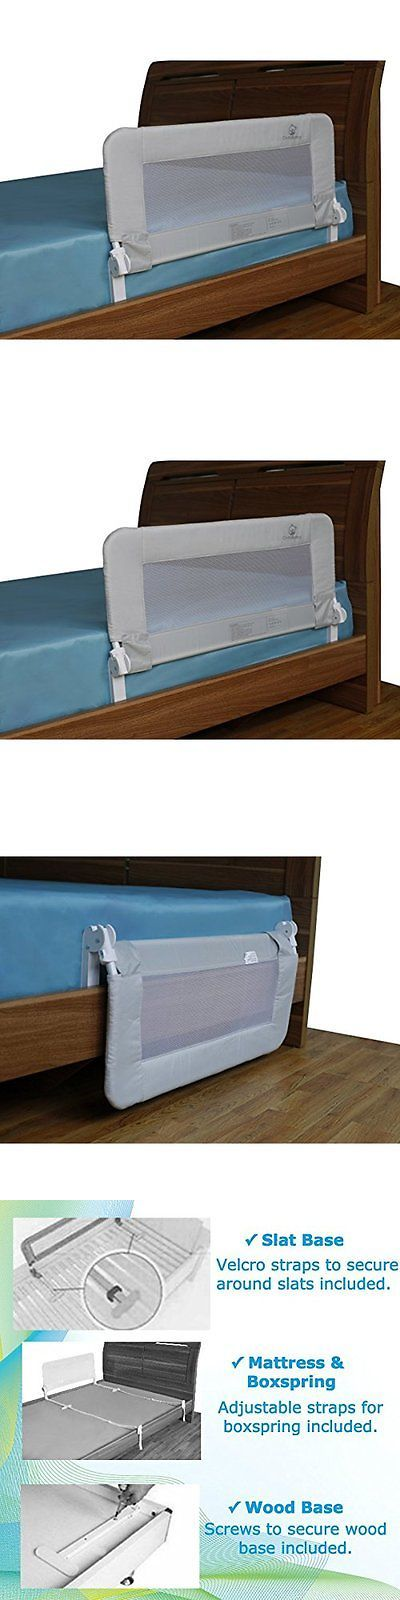 Bed Rails 162183 Toddler Rail Guard For Convertible Crib Kids Twin Double